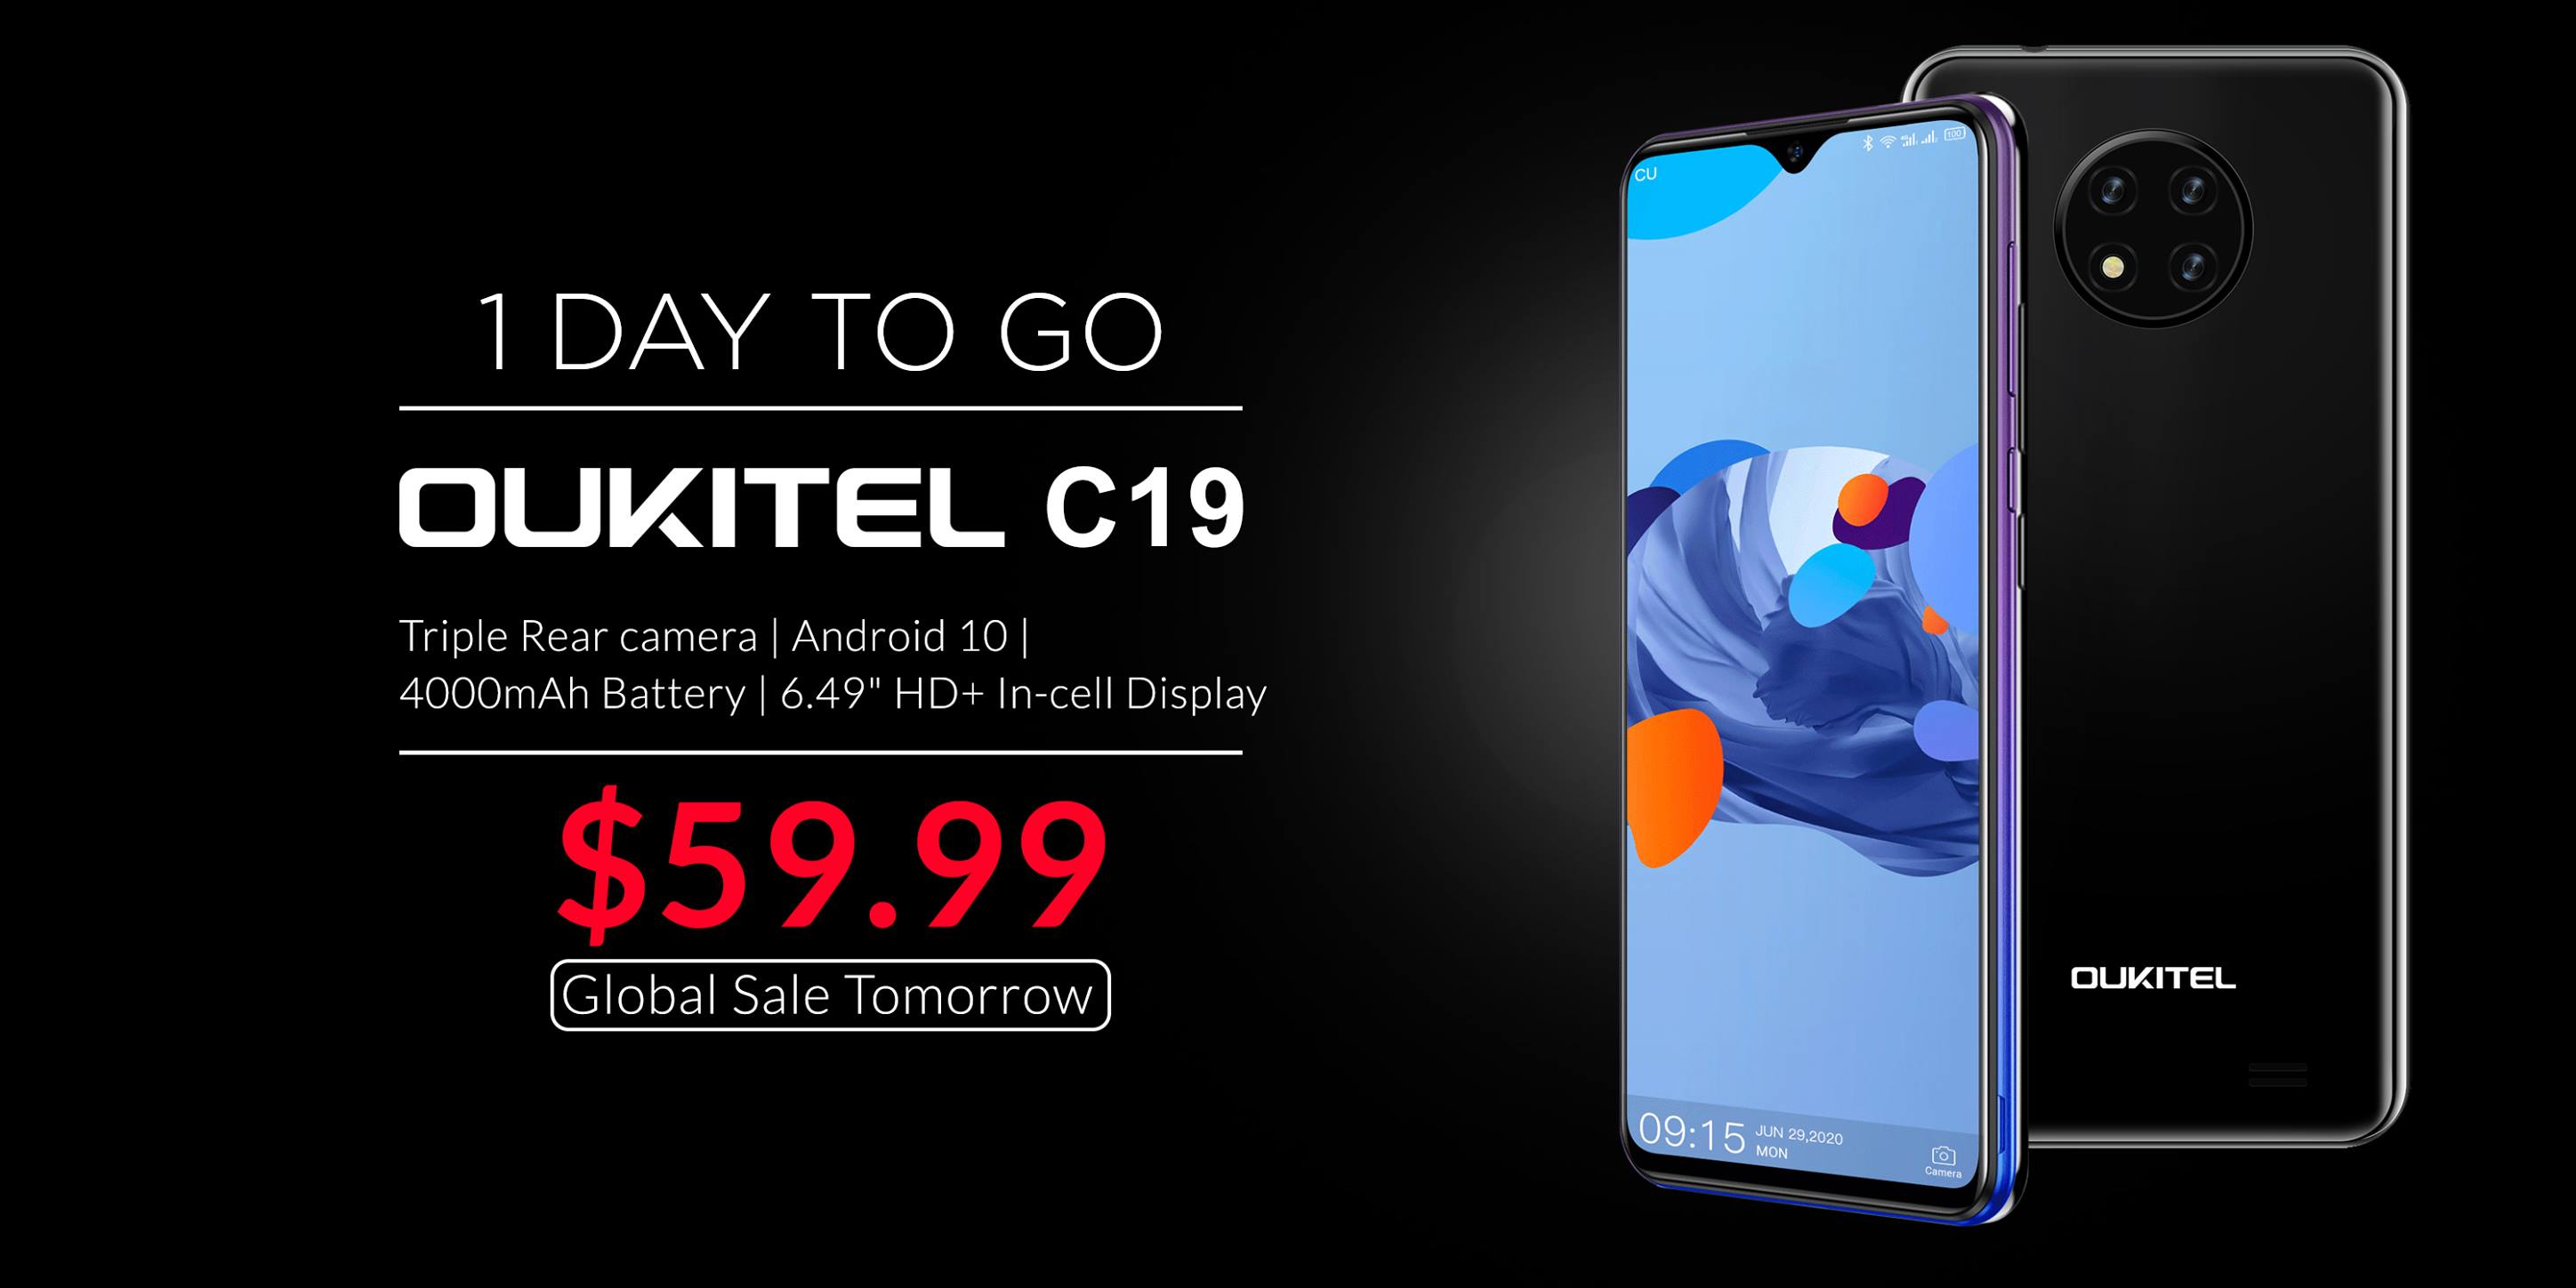 One day to go📣 Entry Level Beast #OUKITEL #C19 will available at $59.99 from tomorrow. Don't miss this deal👉...